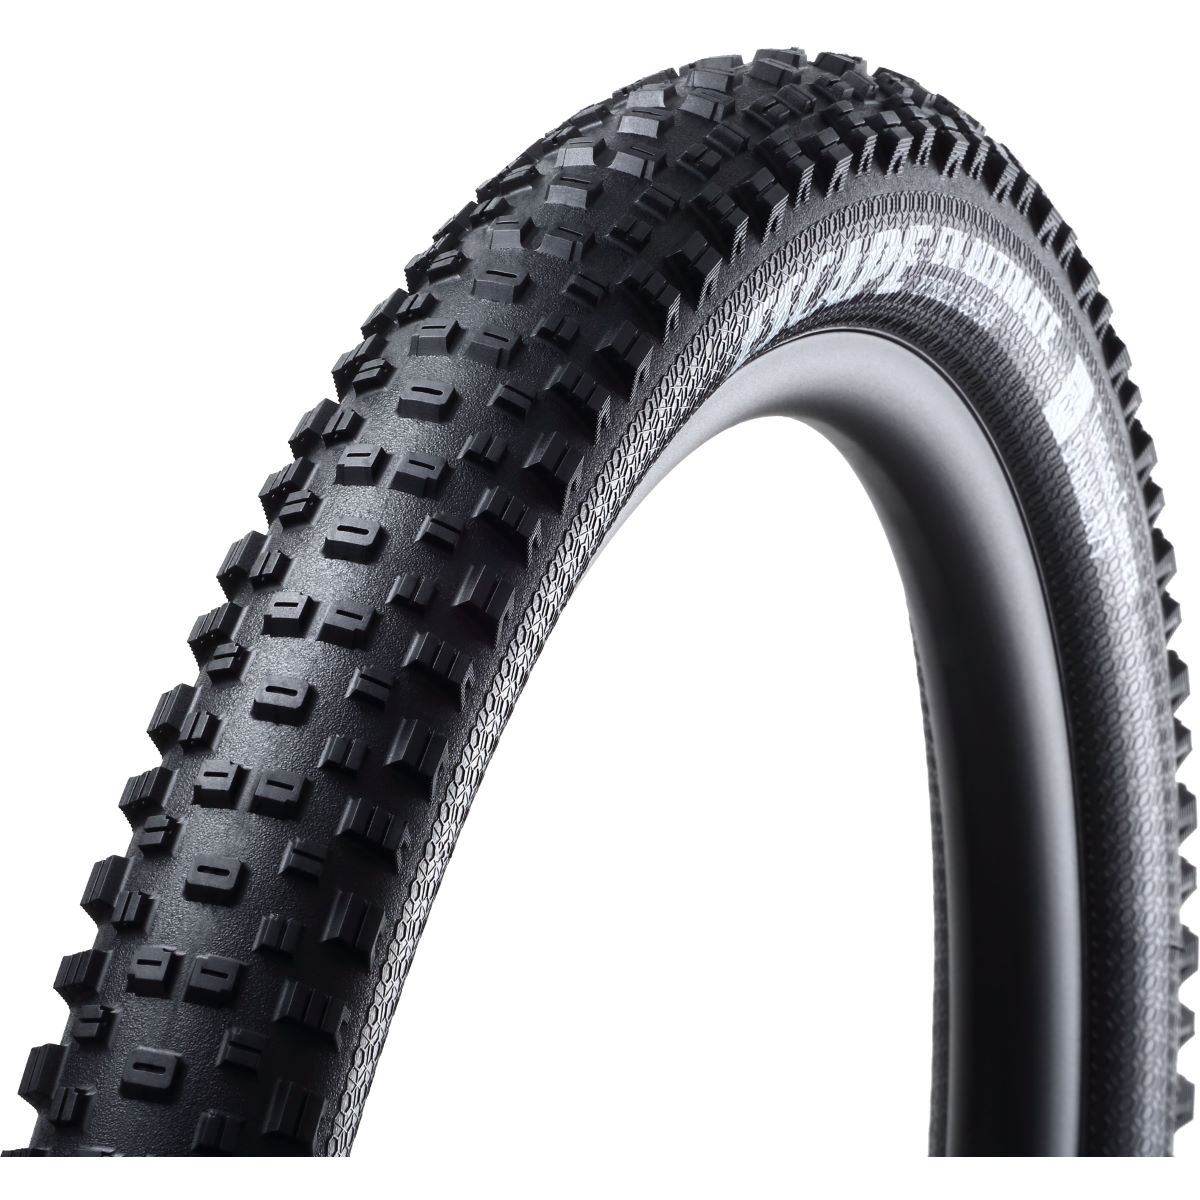 Goodyear Escape EN Ultimate Tubeless MTB Tyre - Cubiertas